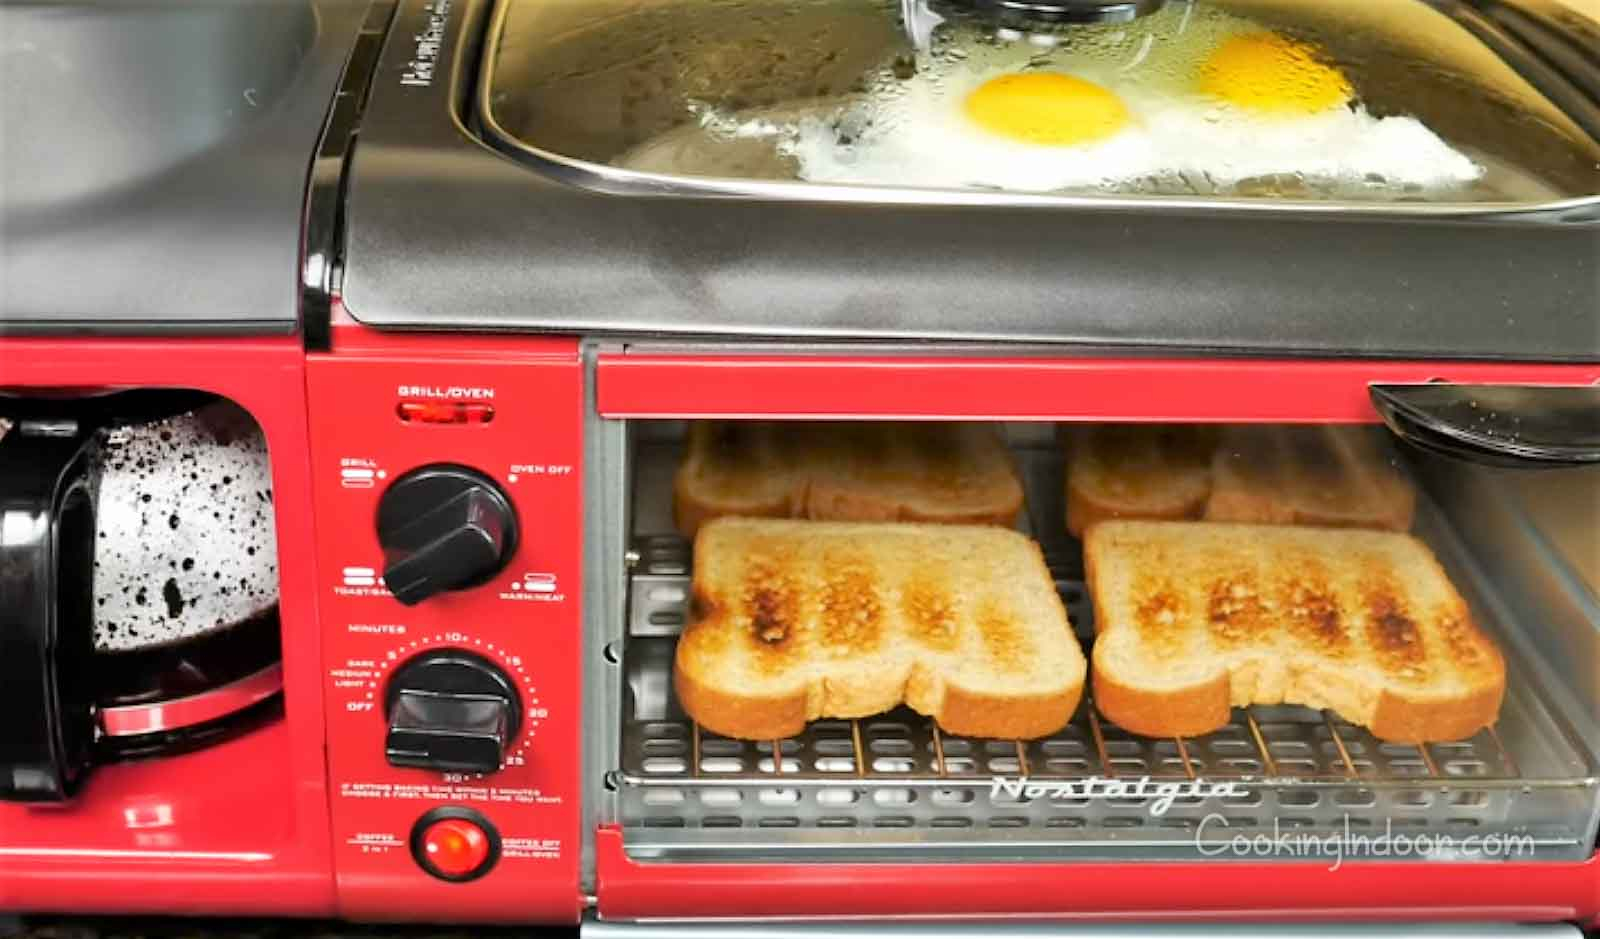 Best 3 in 1 toaster oven